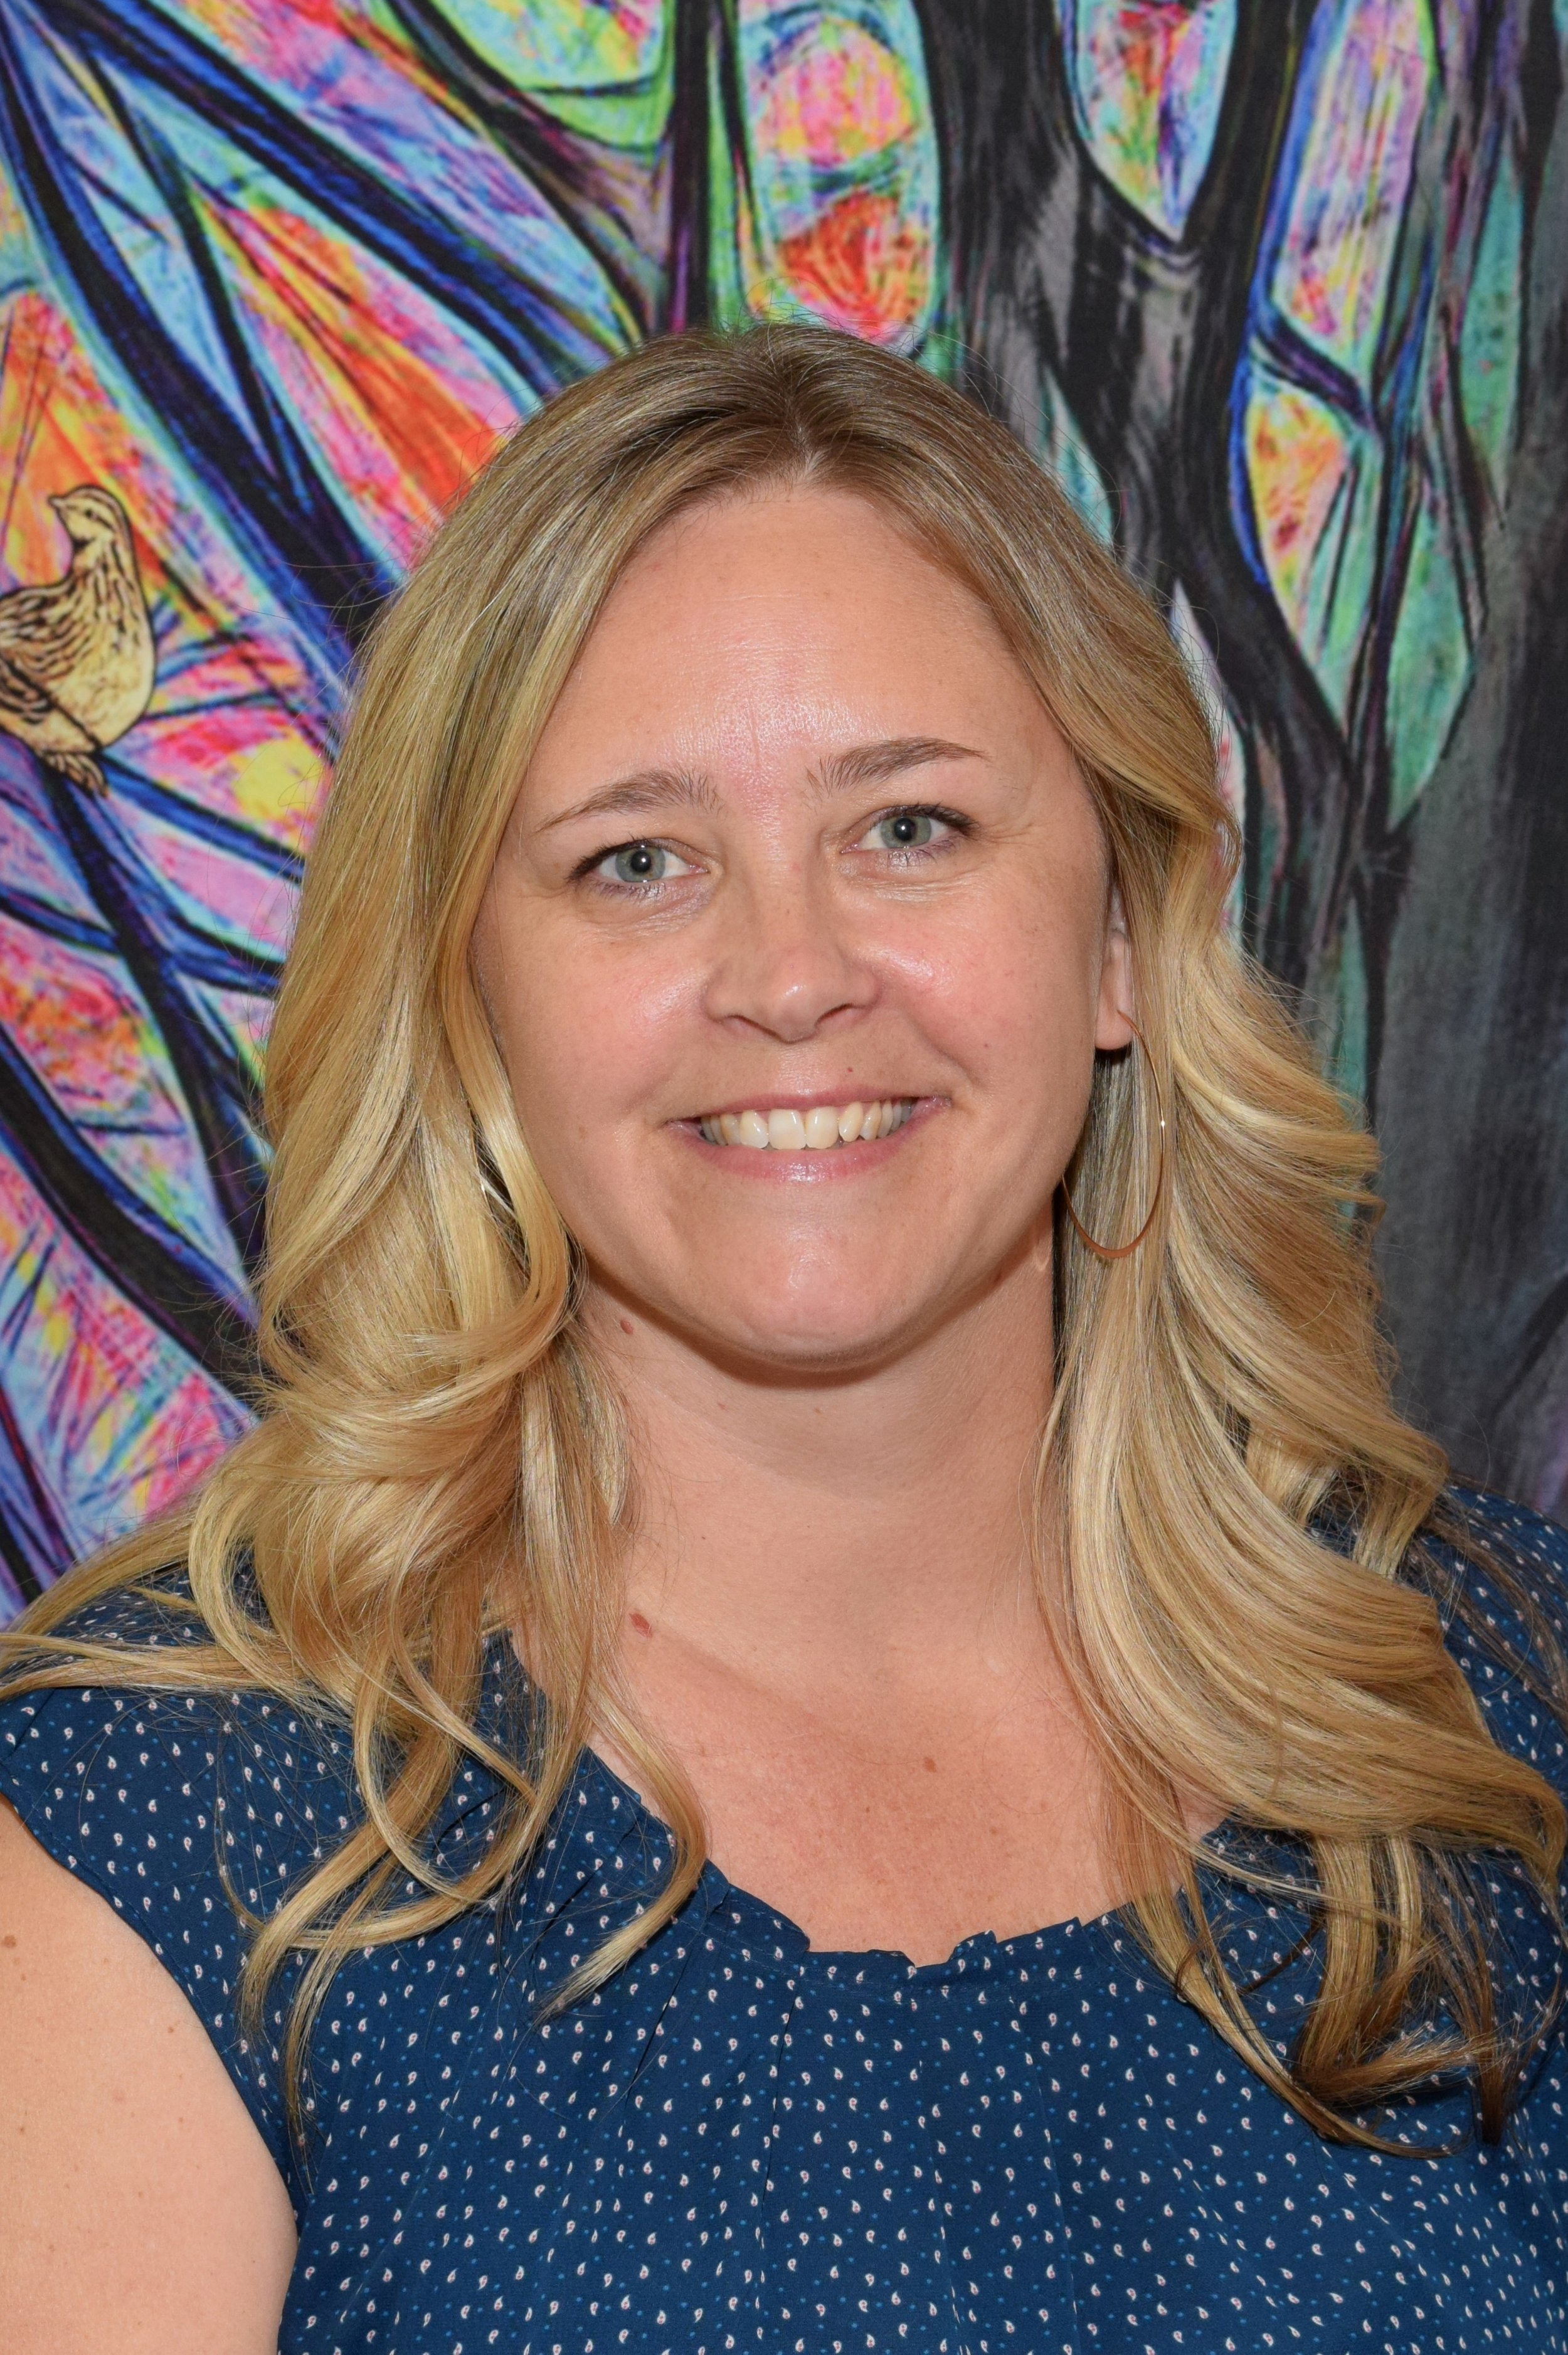 Tiffani Pullyblank - Board Member -tiffani@stonewallchico.orgTiffani (she/her) and her family returned to her hometown of Chico in 2012, after spending well over a decade living in Canada and New Zealand. They are enjoying everything this beautiful area has to offer, most especially the people and the park! With many friends and family connections to the LGBTQ+ community, and a passion for social justice, Tiffani wants to put her Social Work skills to work for Stonewall, and is honored to serve on the Board of Directors.